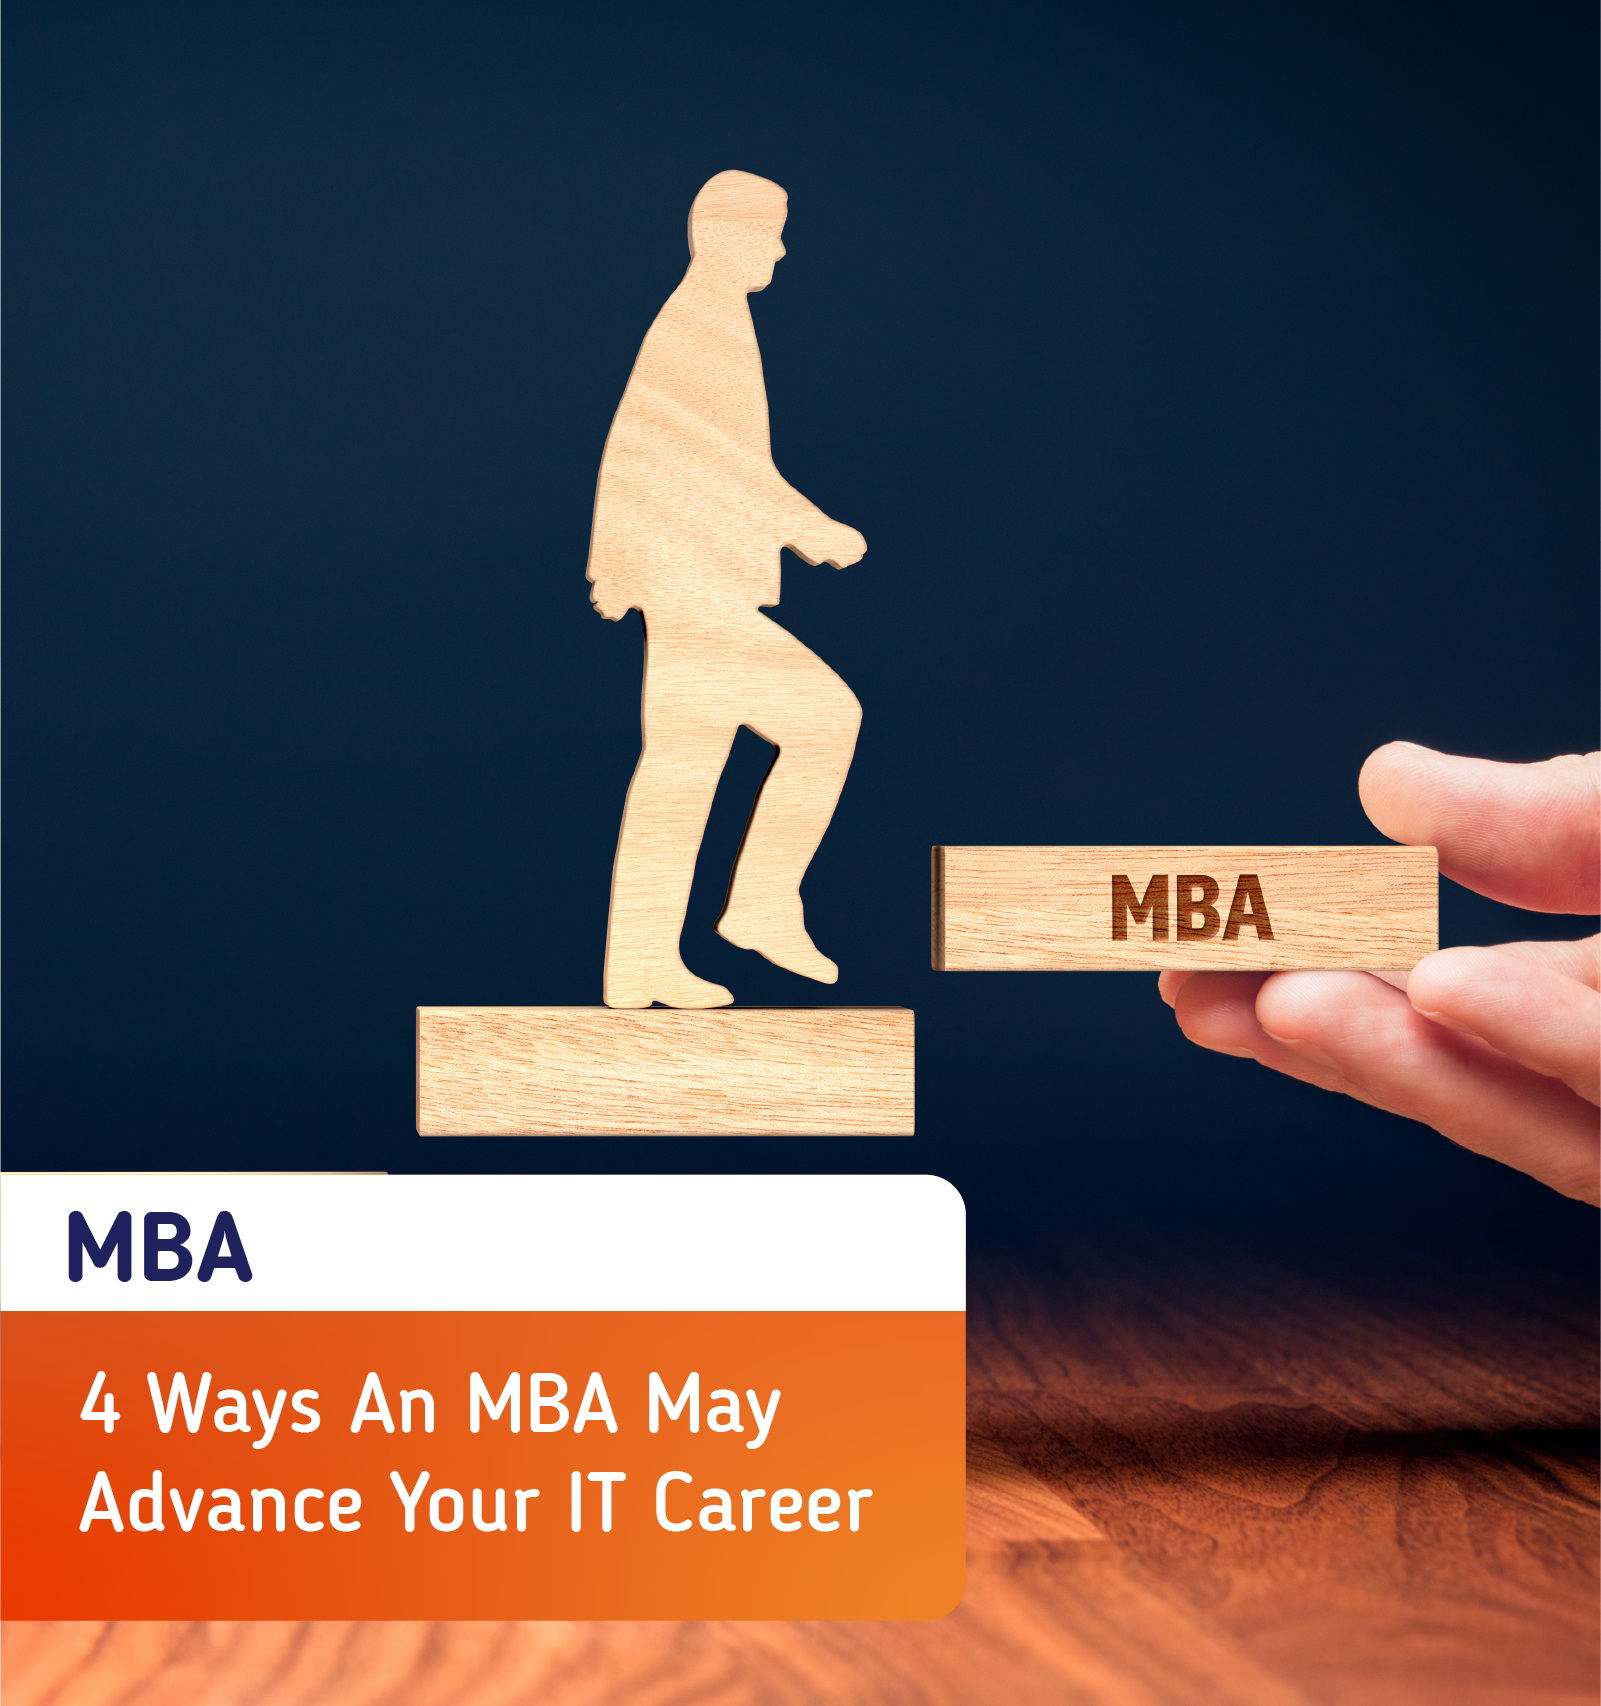 4 Ways An MBA May Advance Your IT Career